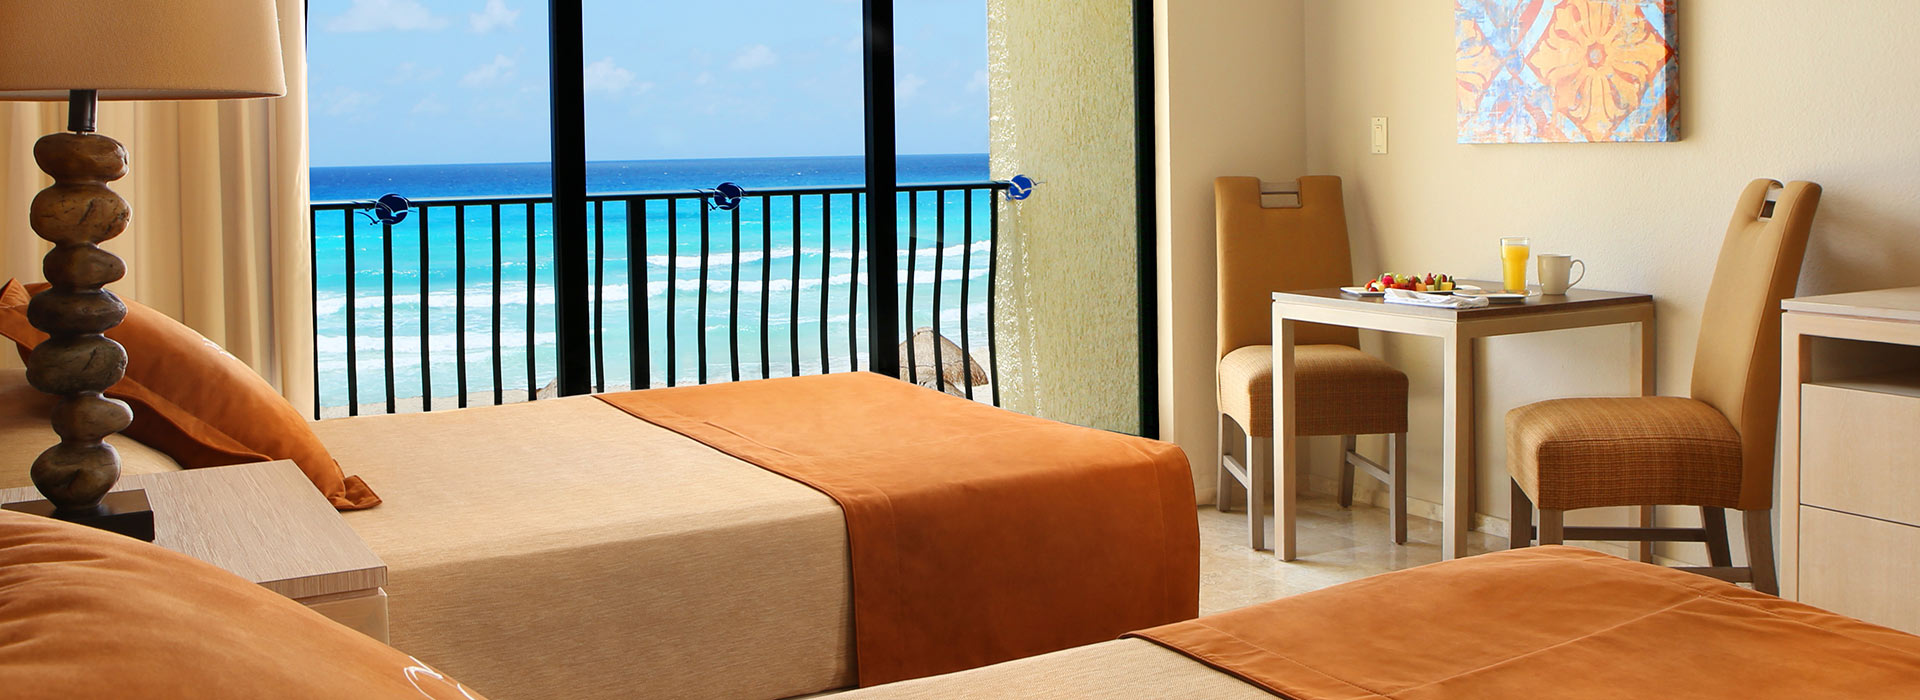 Junior Suite con vista al mar y amplia sala de estar frente a las hermosas playas del Mar Caribe